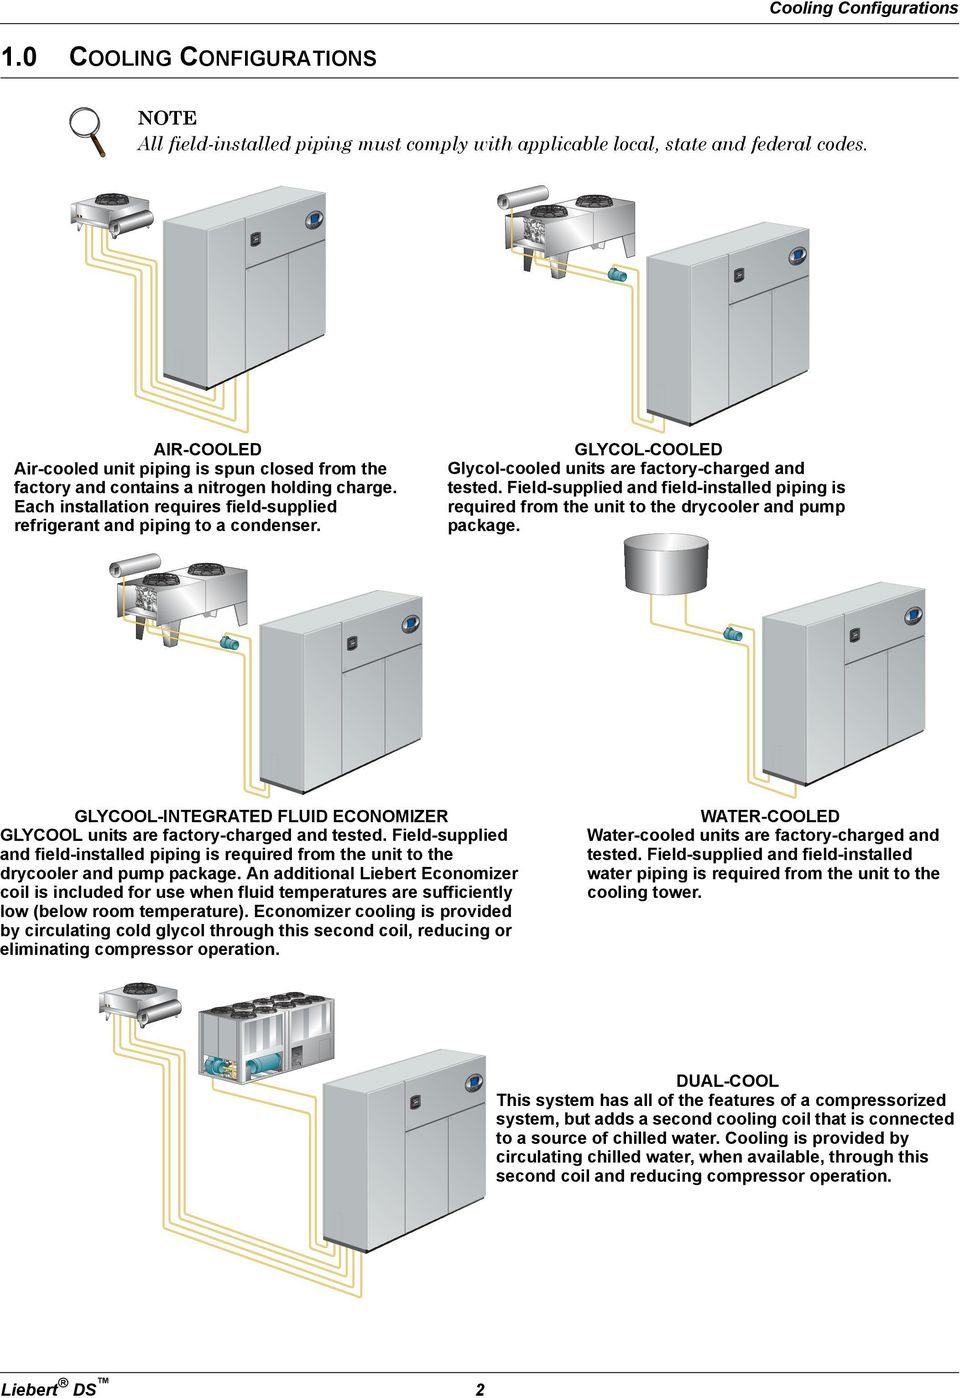 Liebert Ds Thermal Management Unit Pdf Mc Condenser Wiring Diagram Glycol Cooled Units Are Factory Charged And Tested Field